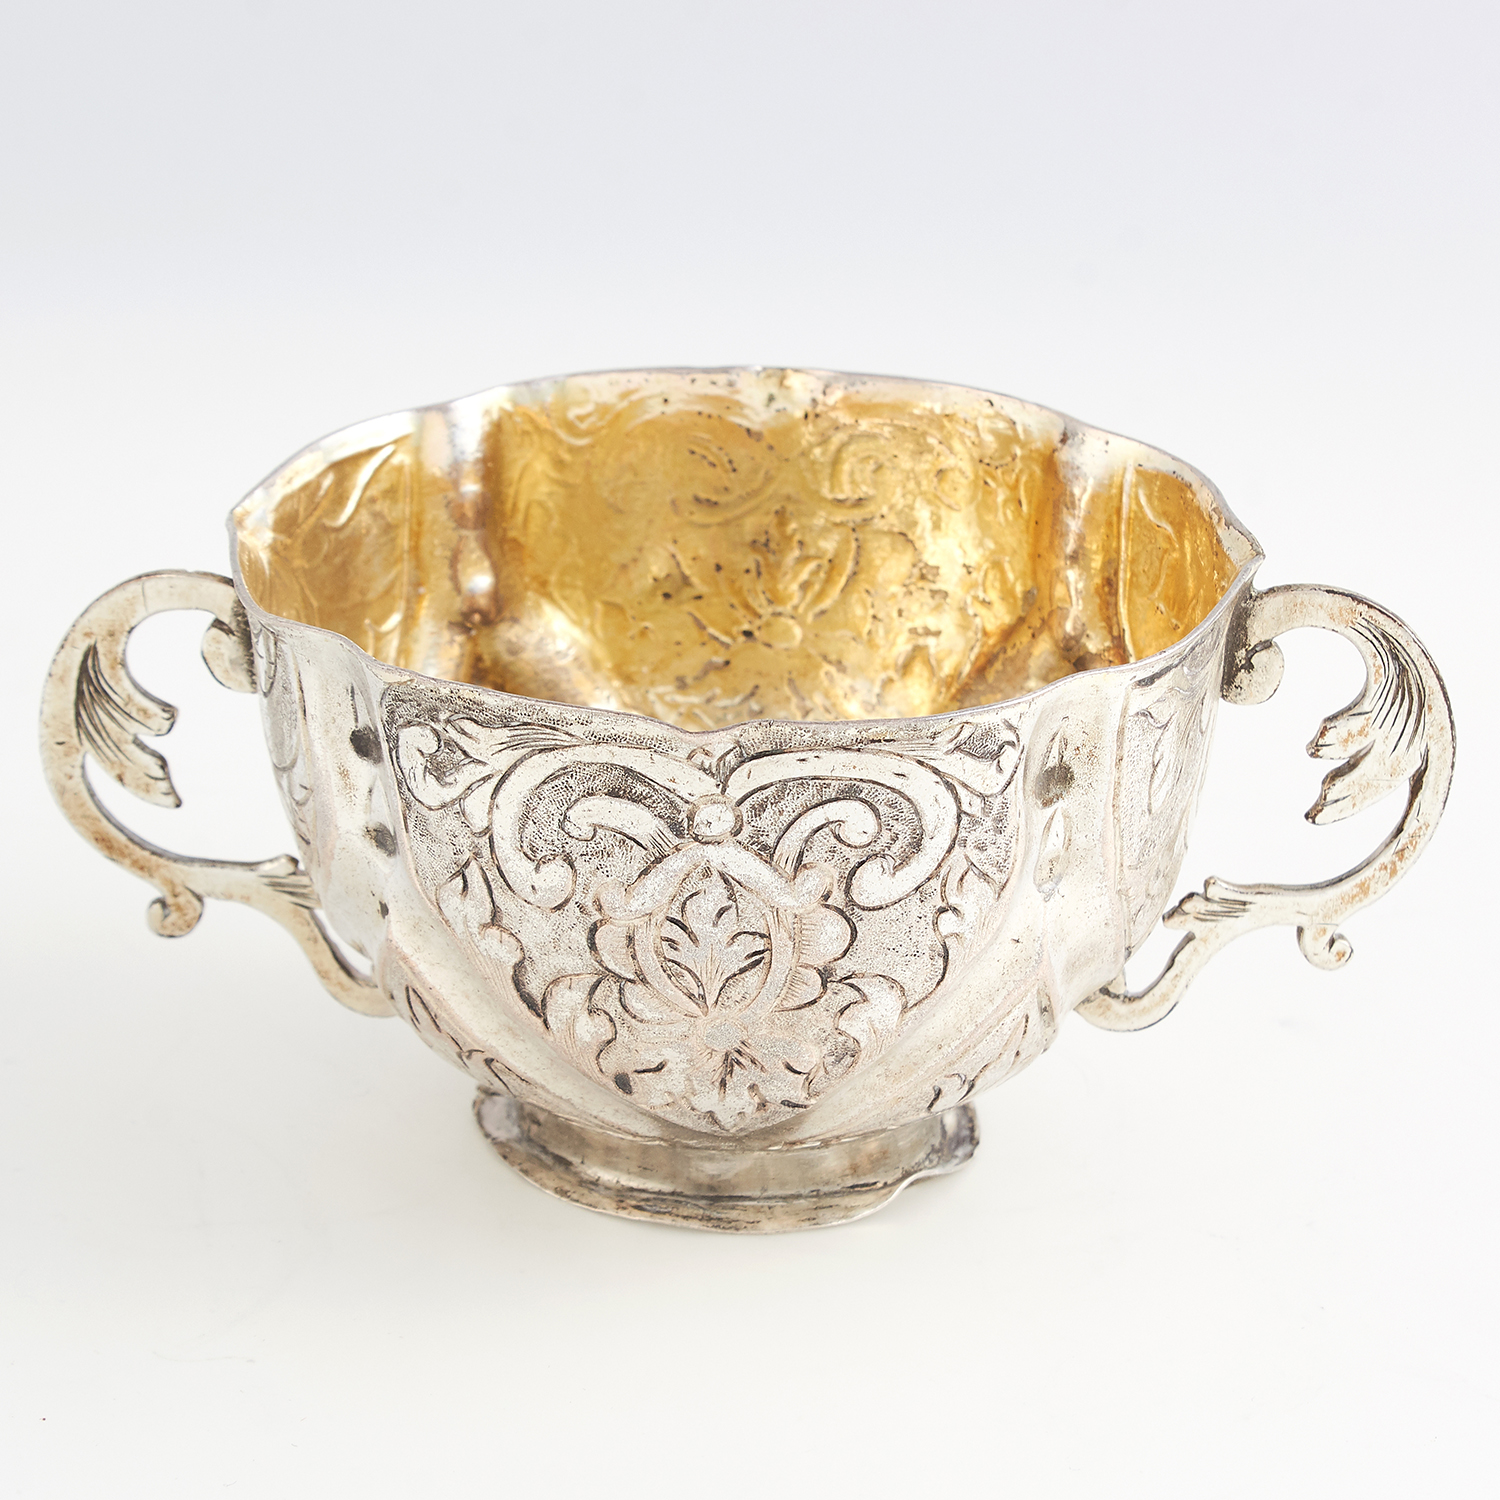 Los 60 - ANTIQUE GERMAN SILVER PORRINGER of rounded form with chased foliate scroll decoration, twin